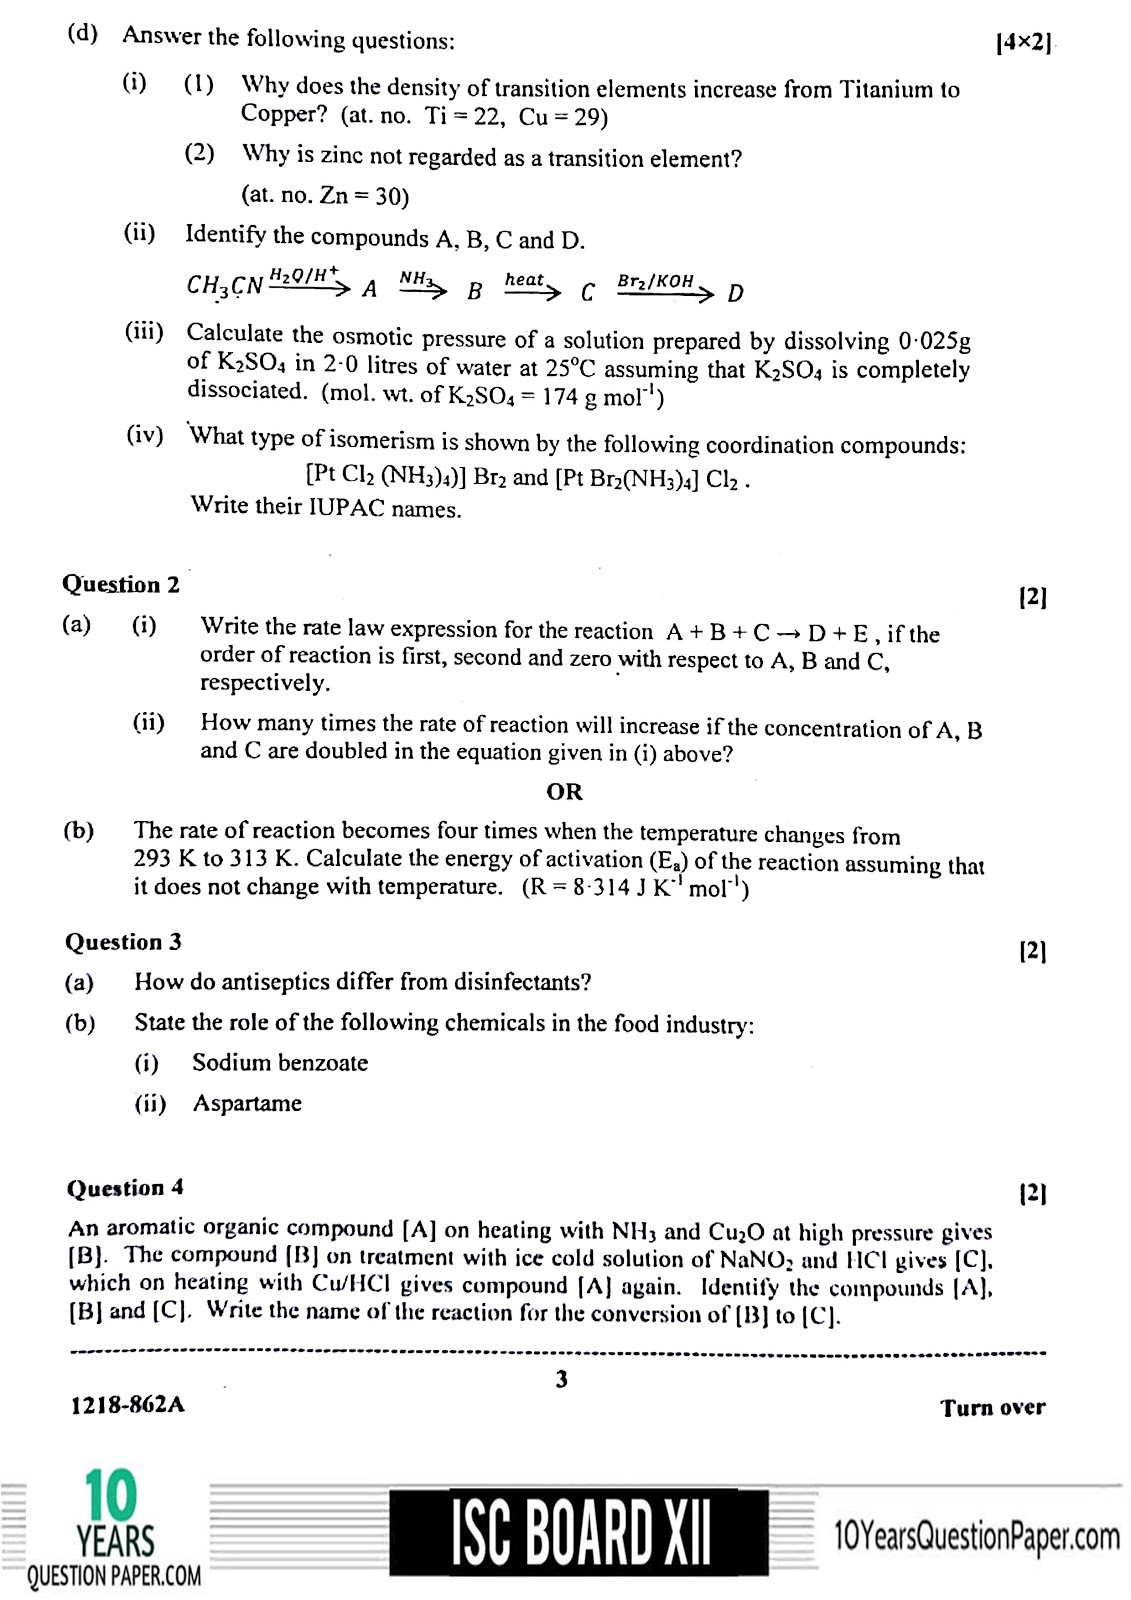 ISC Board 2018 class 12th Chemistry Theory question paper Download page-03